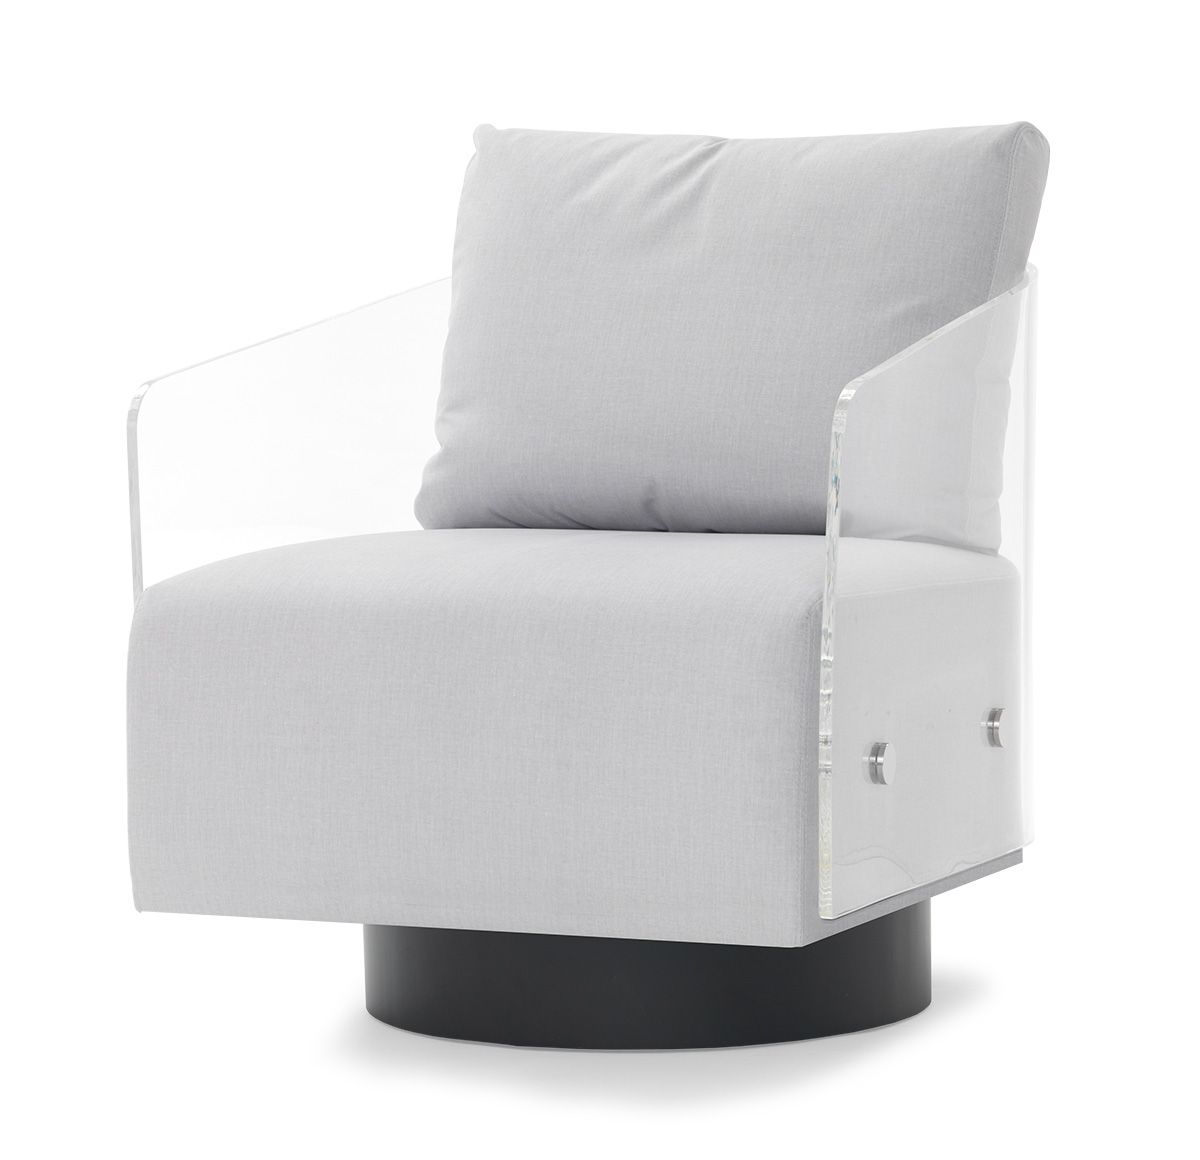 [%Lucy Clear Full Swivel Chair<Br>[Available Online And In Stores For Newest Lucy Grey Sofa Chairs|Lucy Grey Sofa Chairs For Best And Newest Lucy Clear Full Swivel Chair<Br>[Available Online And In Stores|Fashionable Lucy Grey Sofa Chairs For Lucy Clear Full Swivel Chair<Br>[Available Online And In Stores|Latest Lucy Clear Full Swivel Chair<Br>[Available Online And In Stores Intended For Lucy Grey Sofa Chairs%] (View 1 of 20)